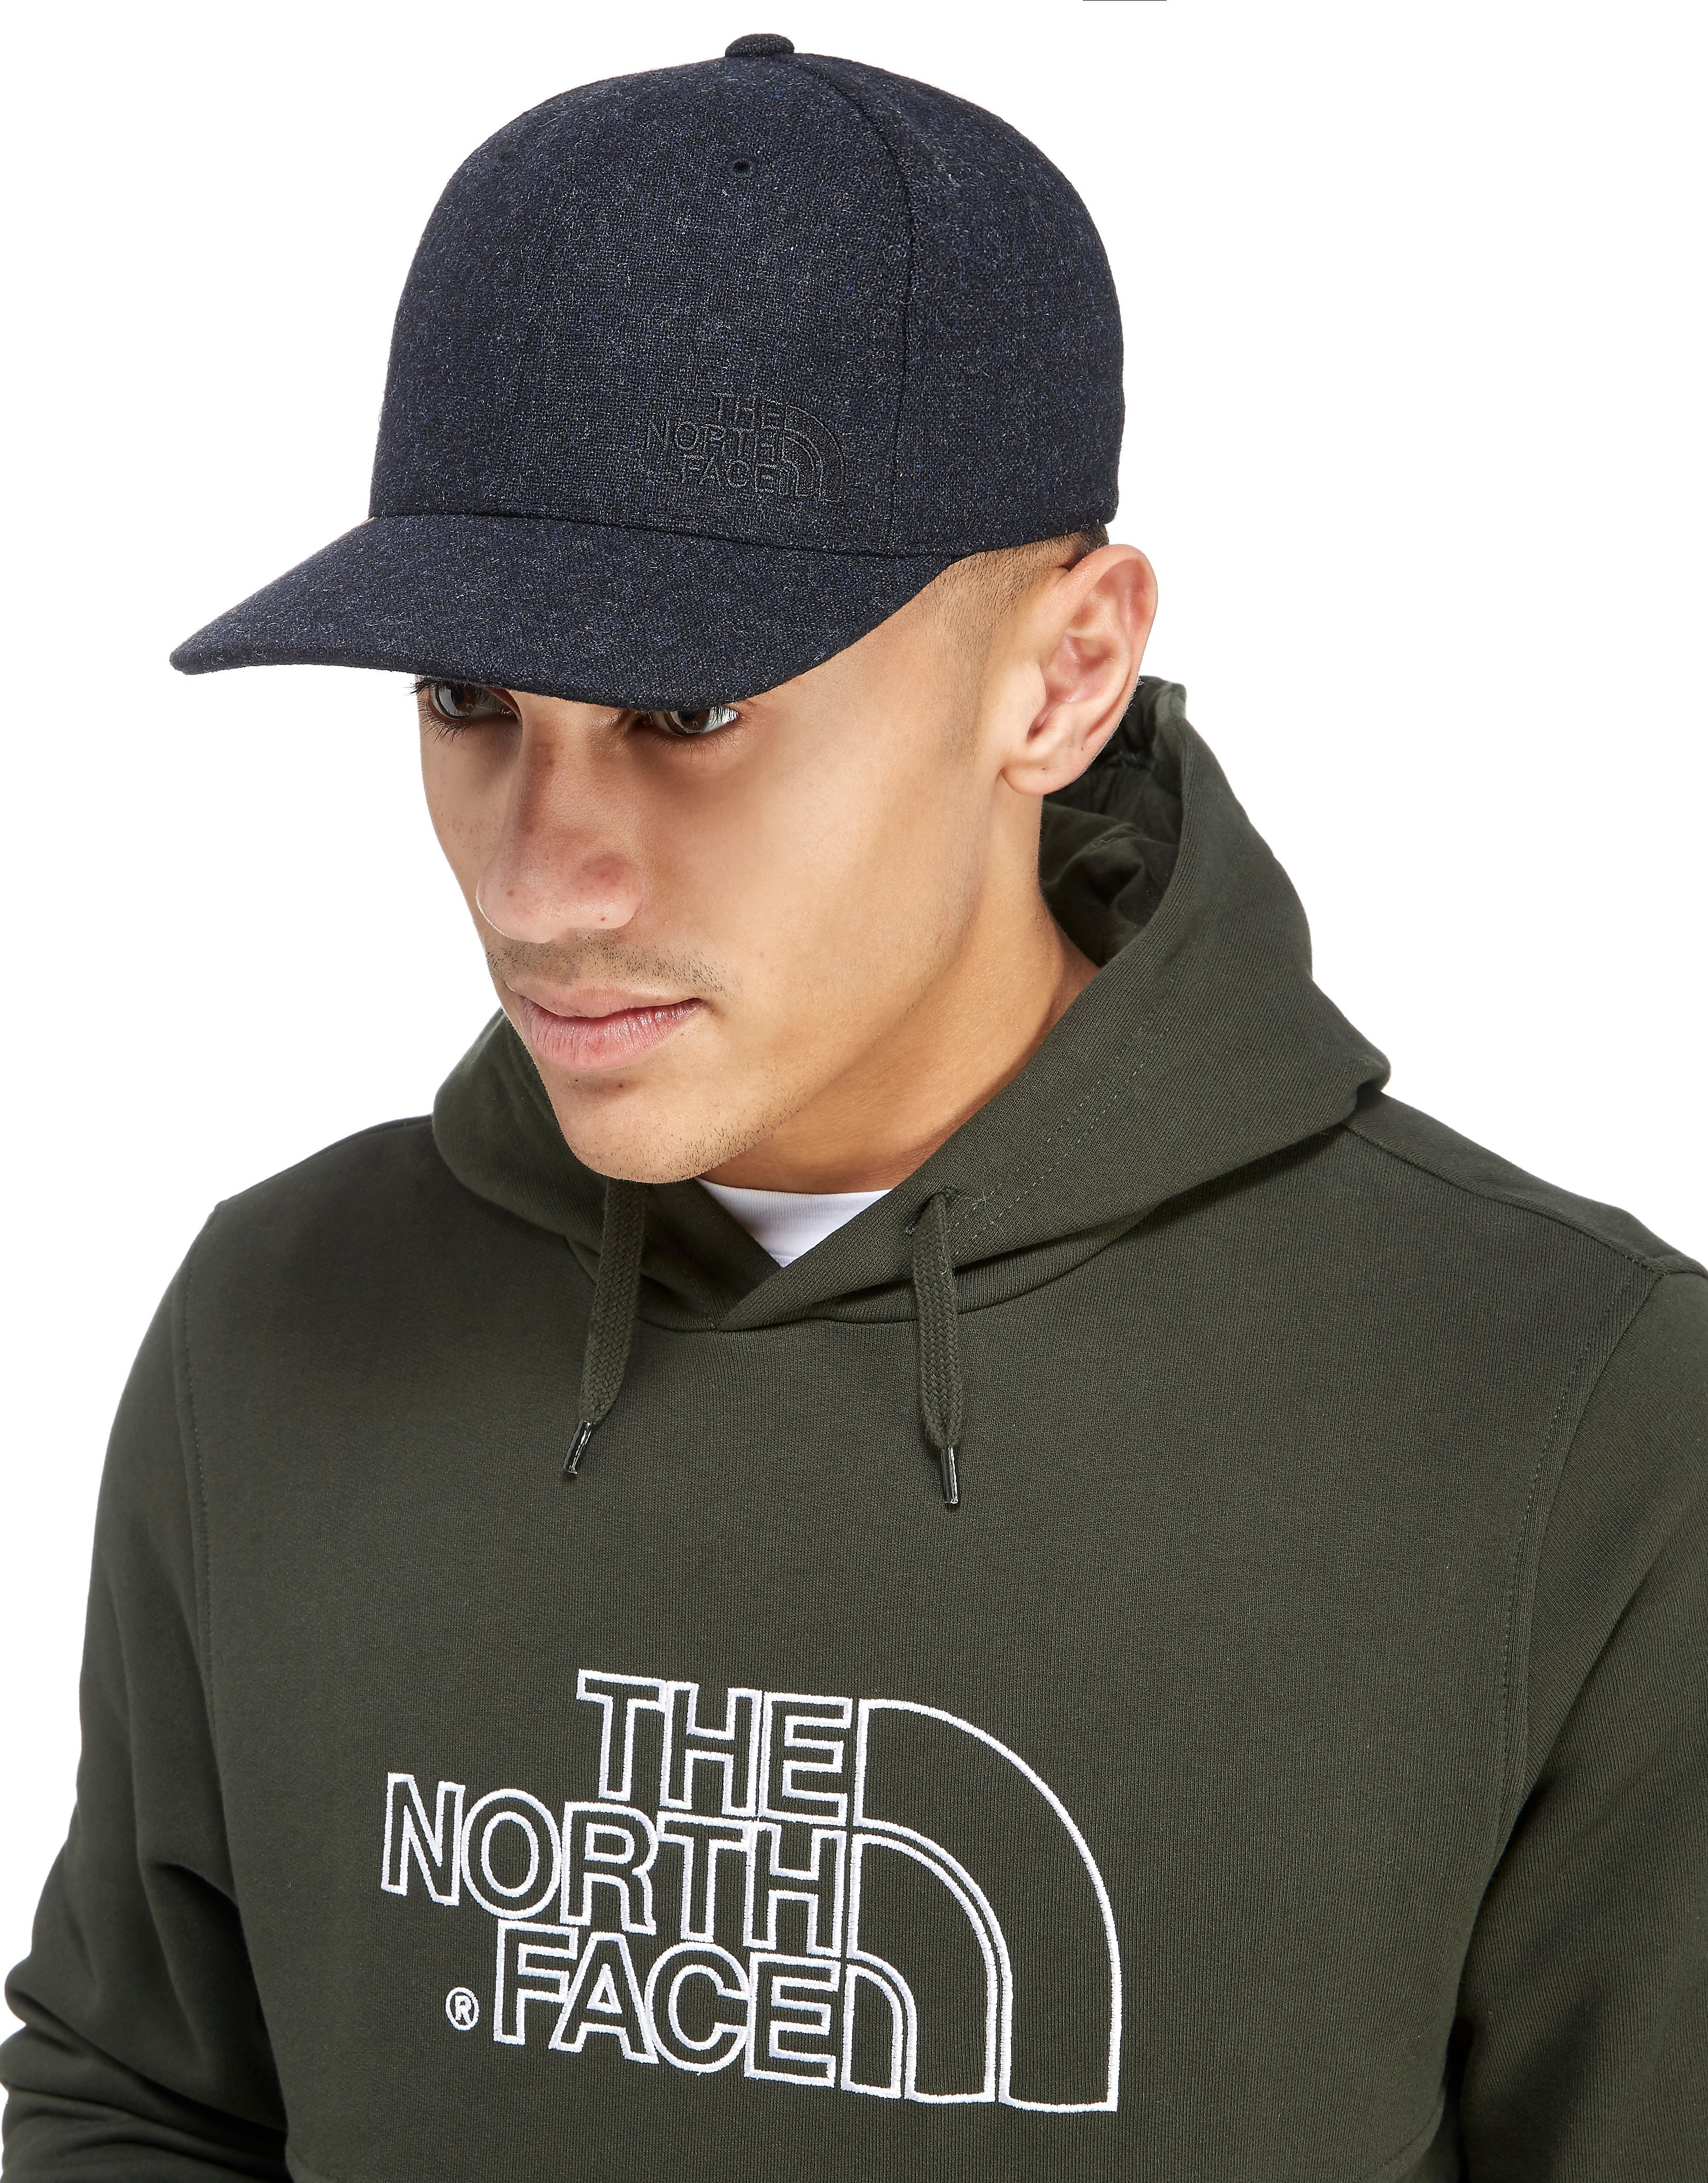 The North Face Classic Ball Cap